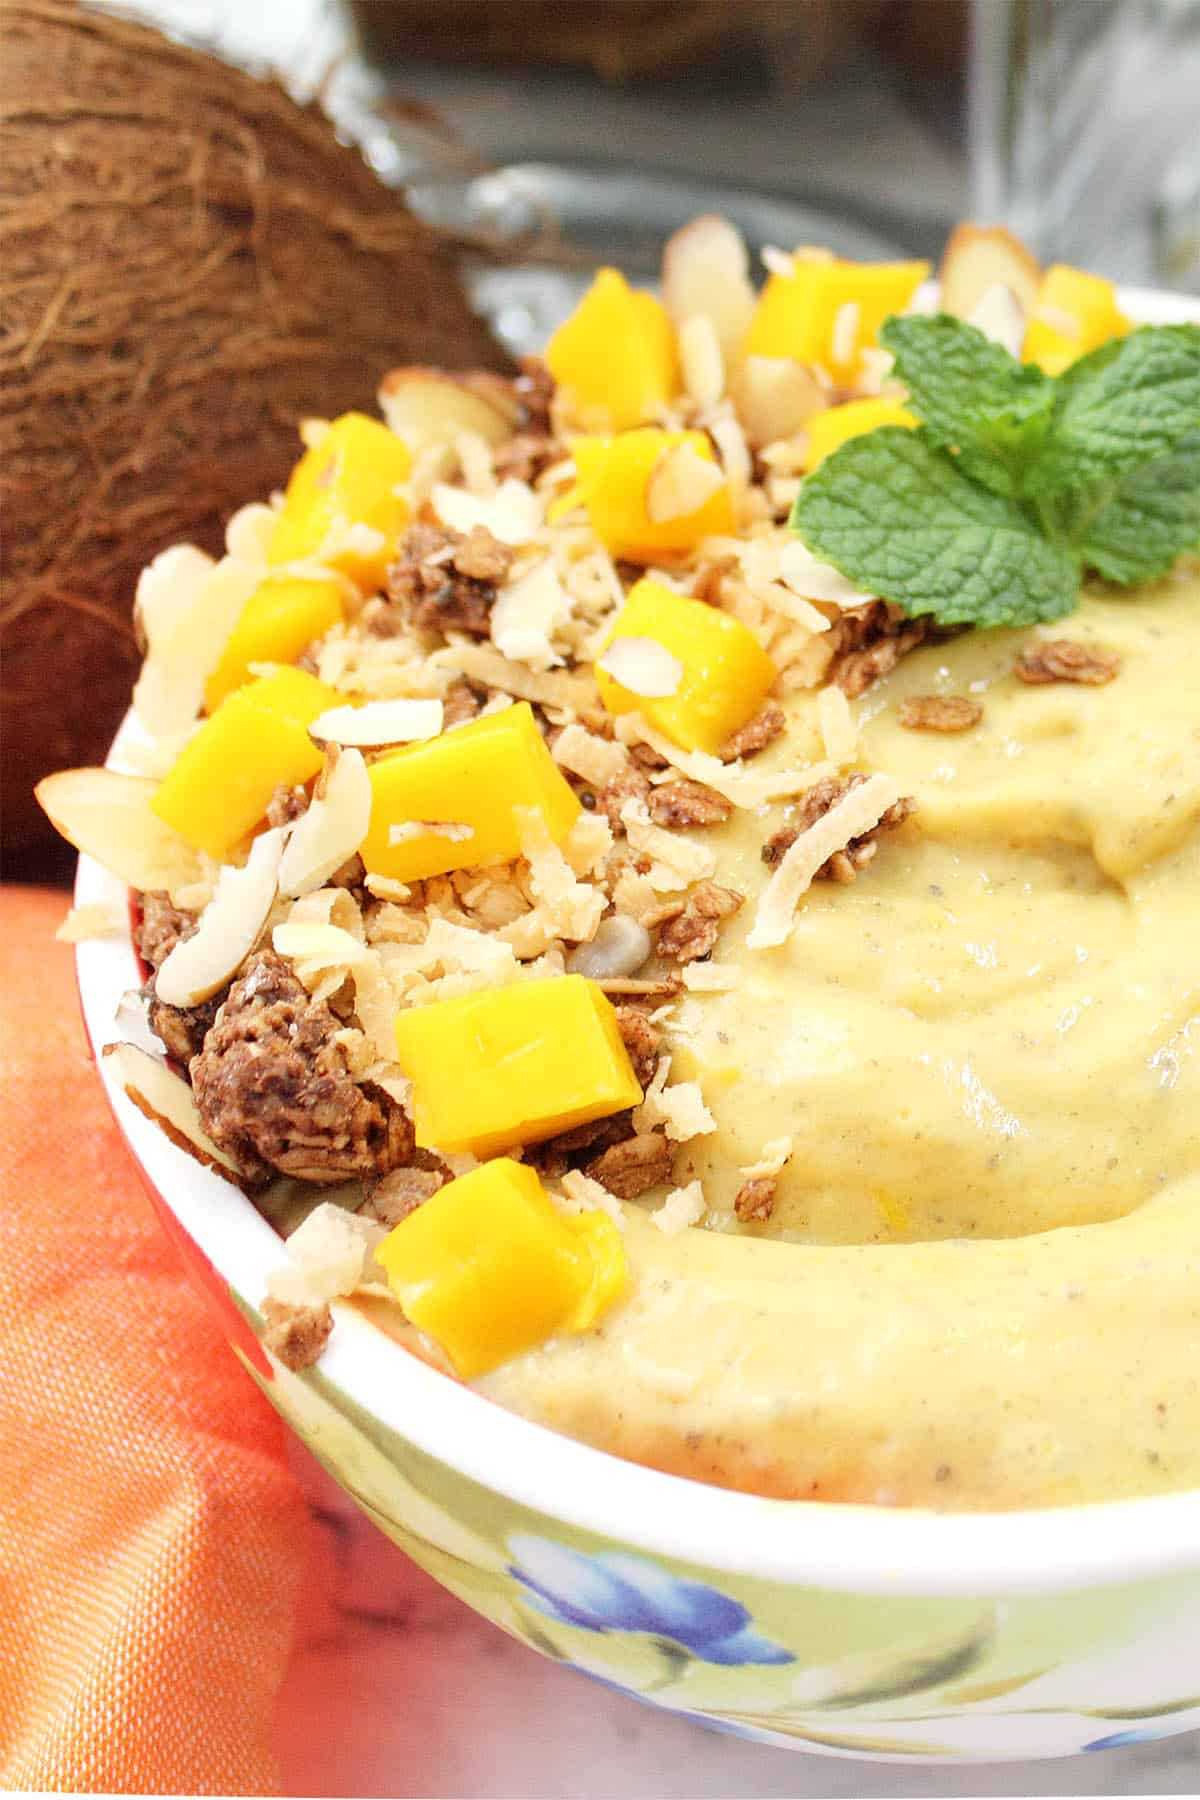 Partial side view of mango smoothie bowl garnished with coconut granola and diced mango.